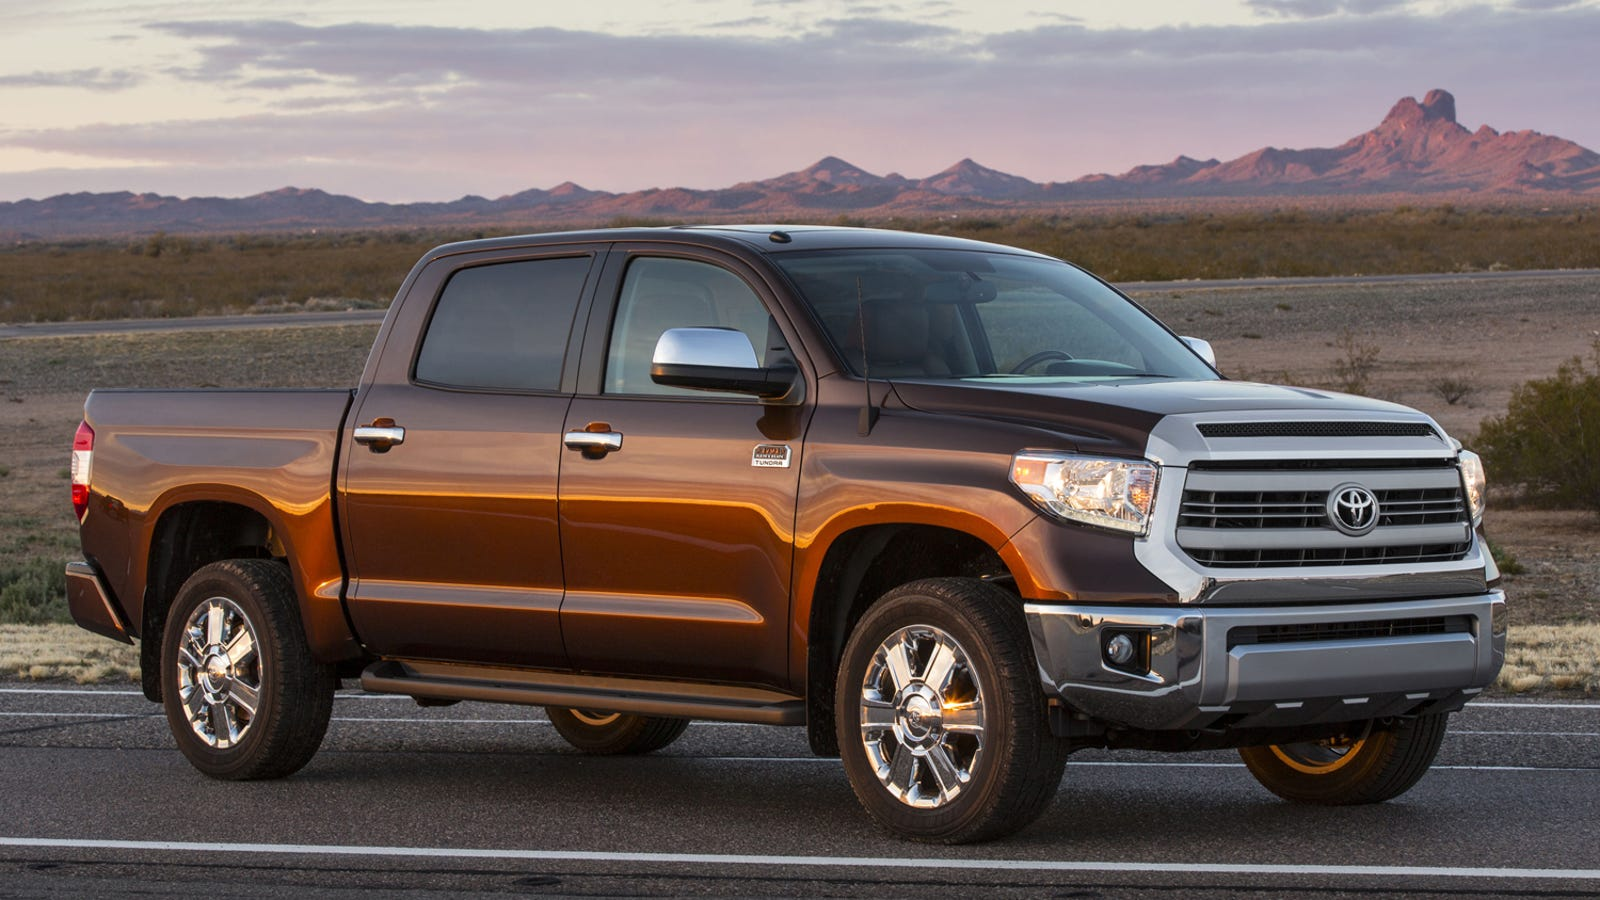 The History Behind The Toyota Tundra 1794 Edition